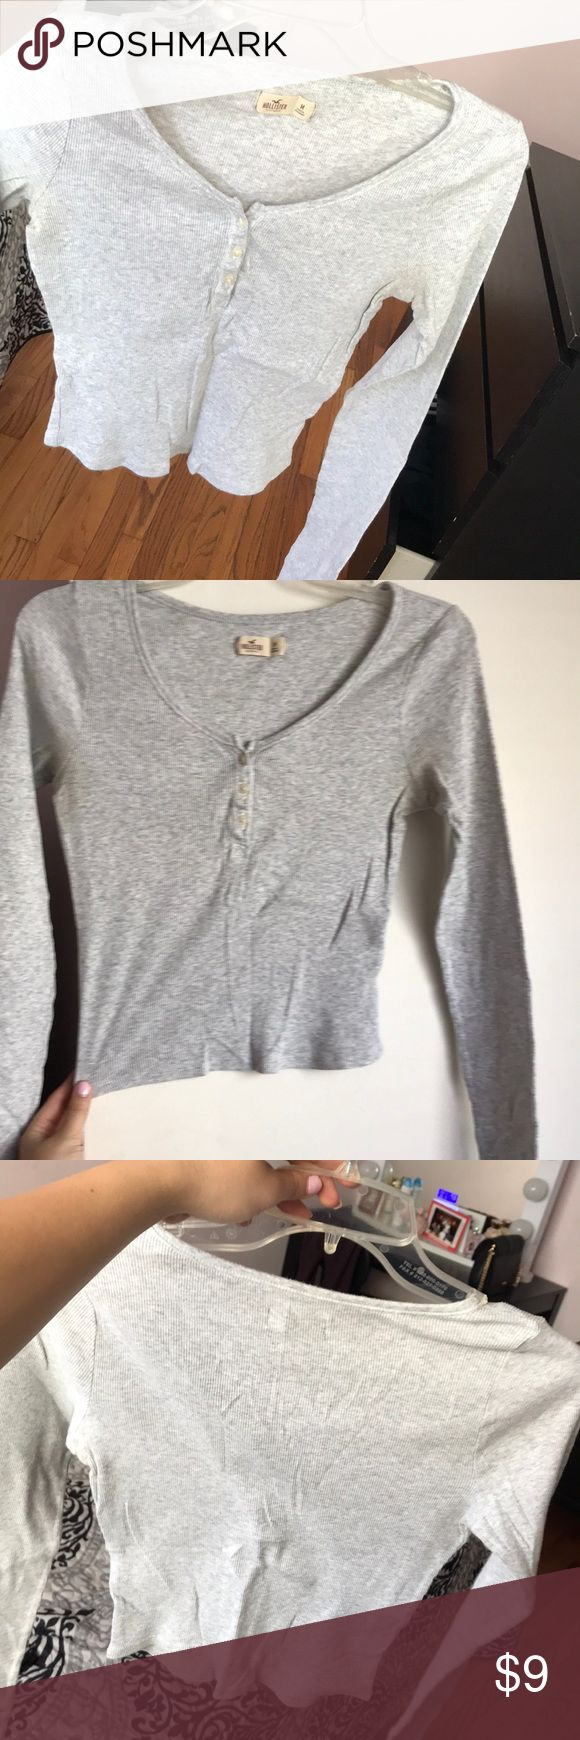 hollister grey button crop very cute and comfy long sleeve crop with buttons! Hollister Tops Crop Tops